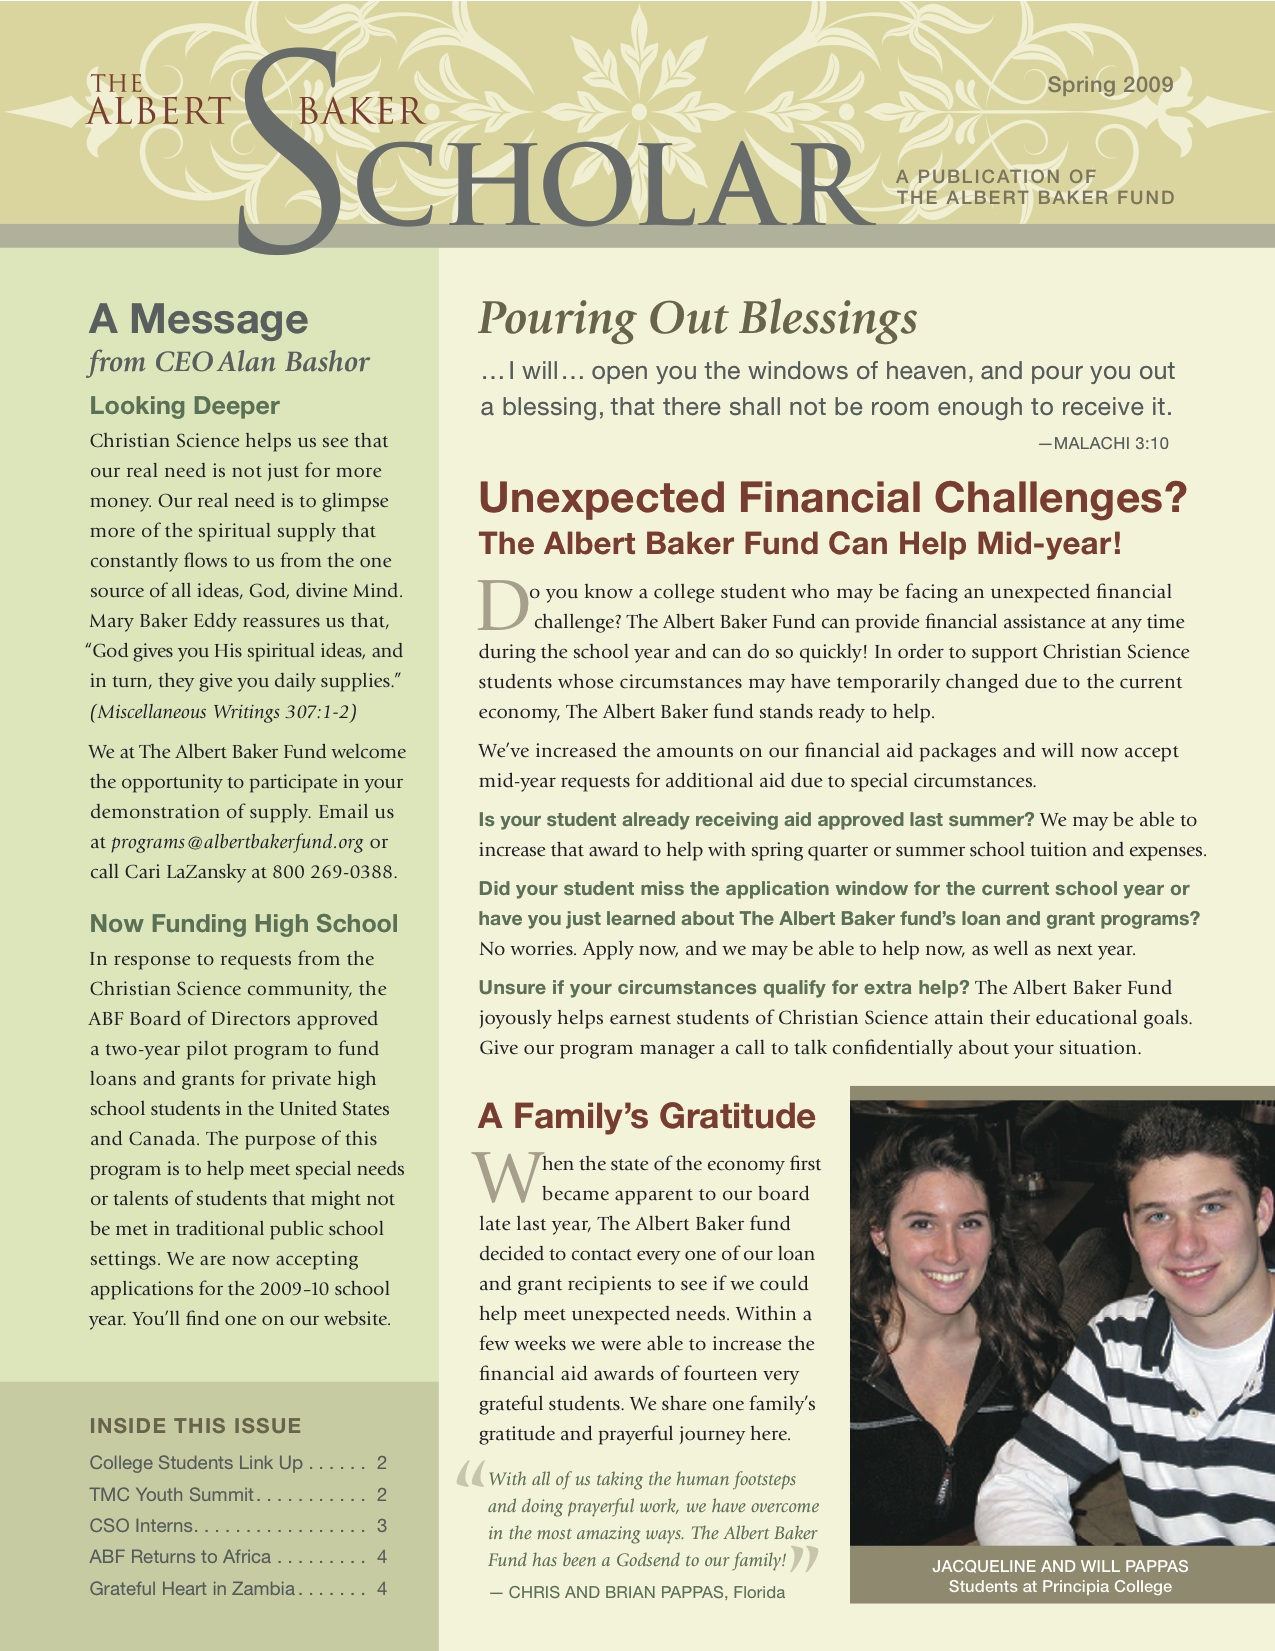 The Albert Baker Scholar - Spring 2009 Newsletter